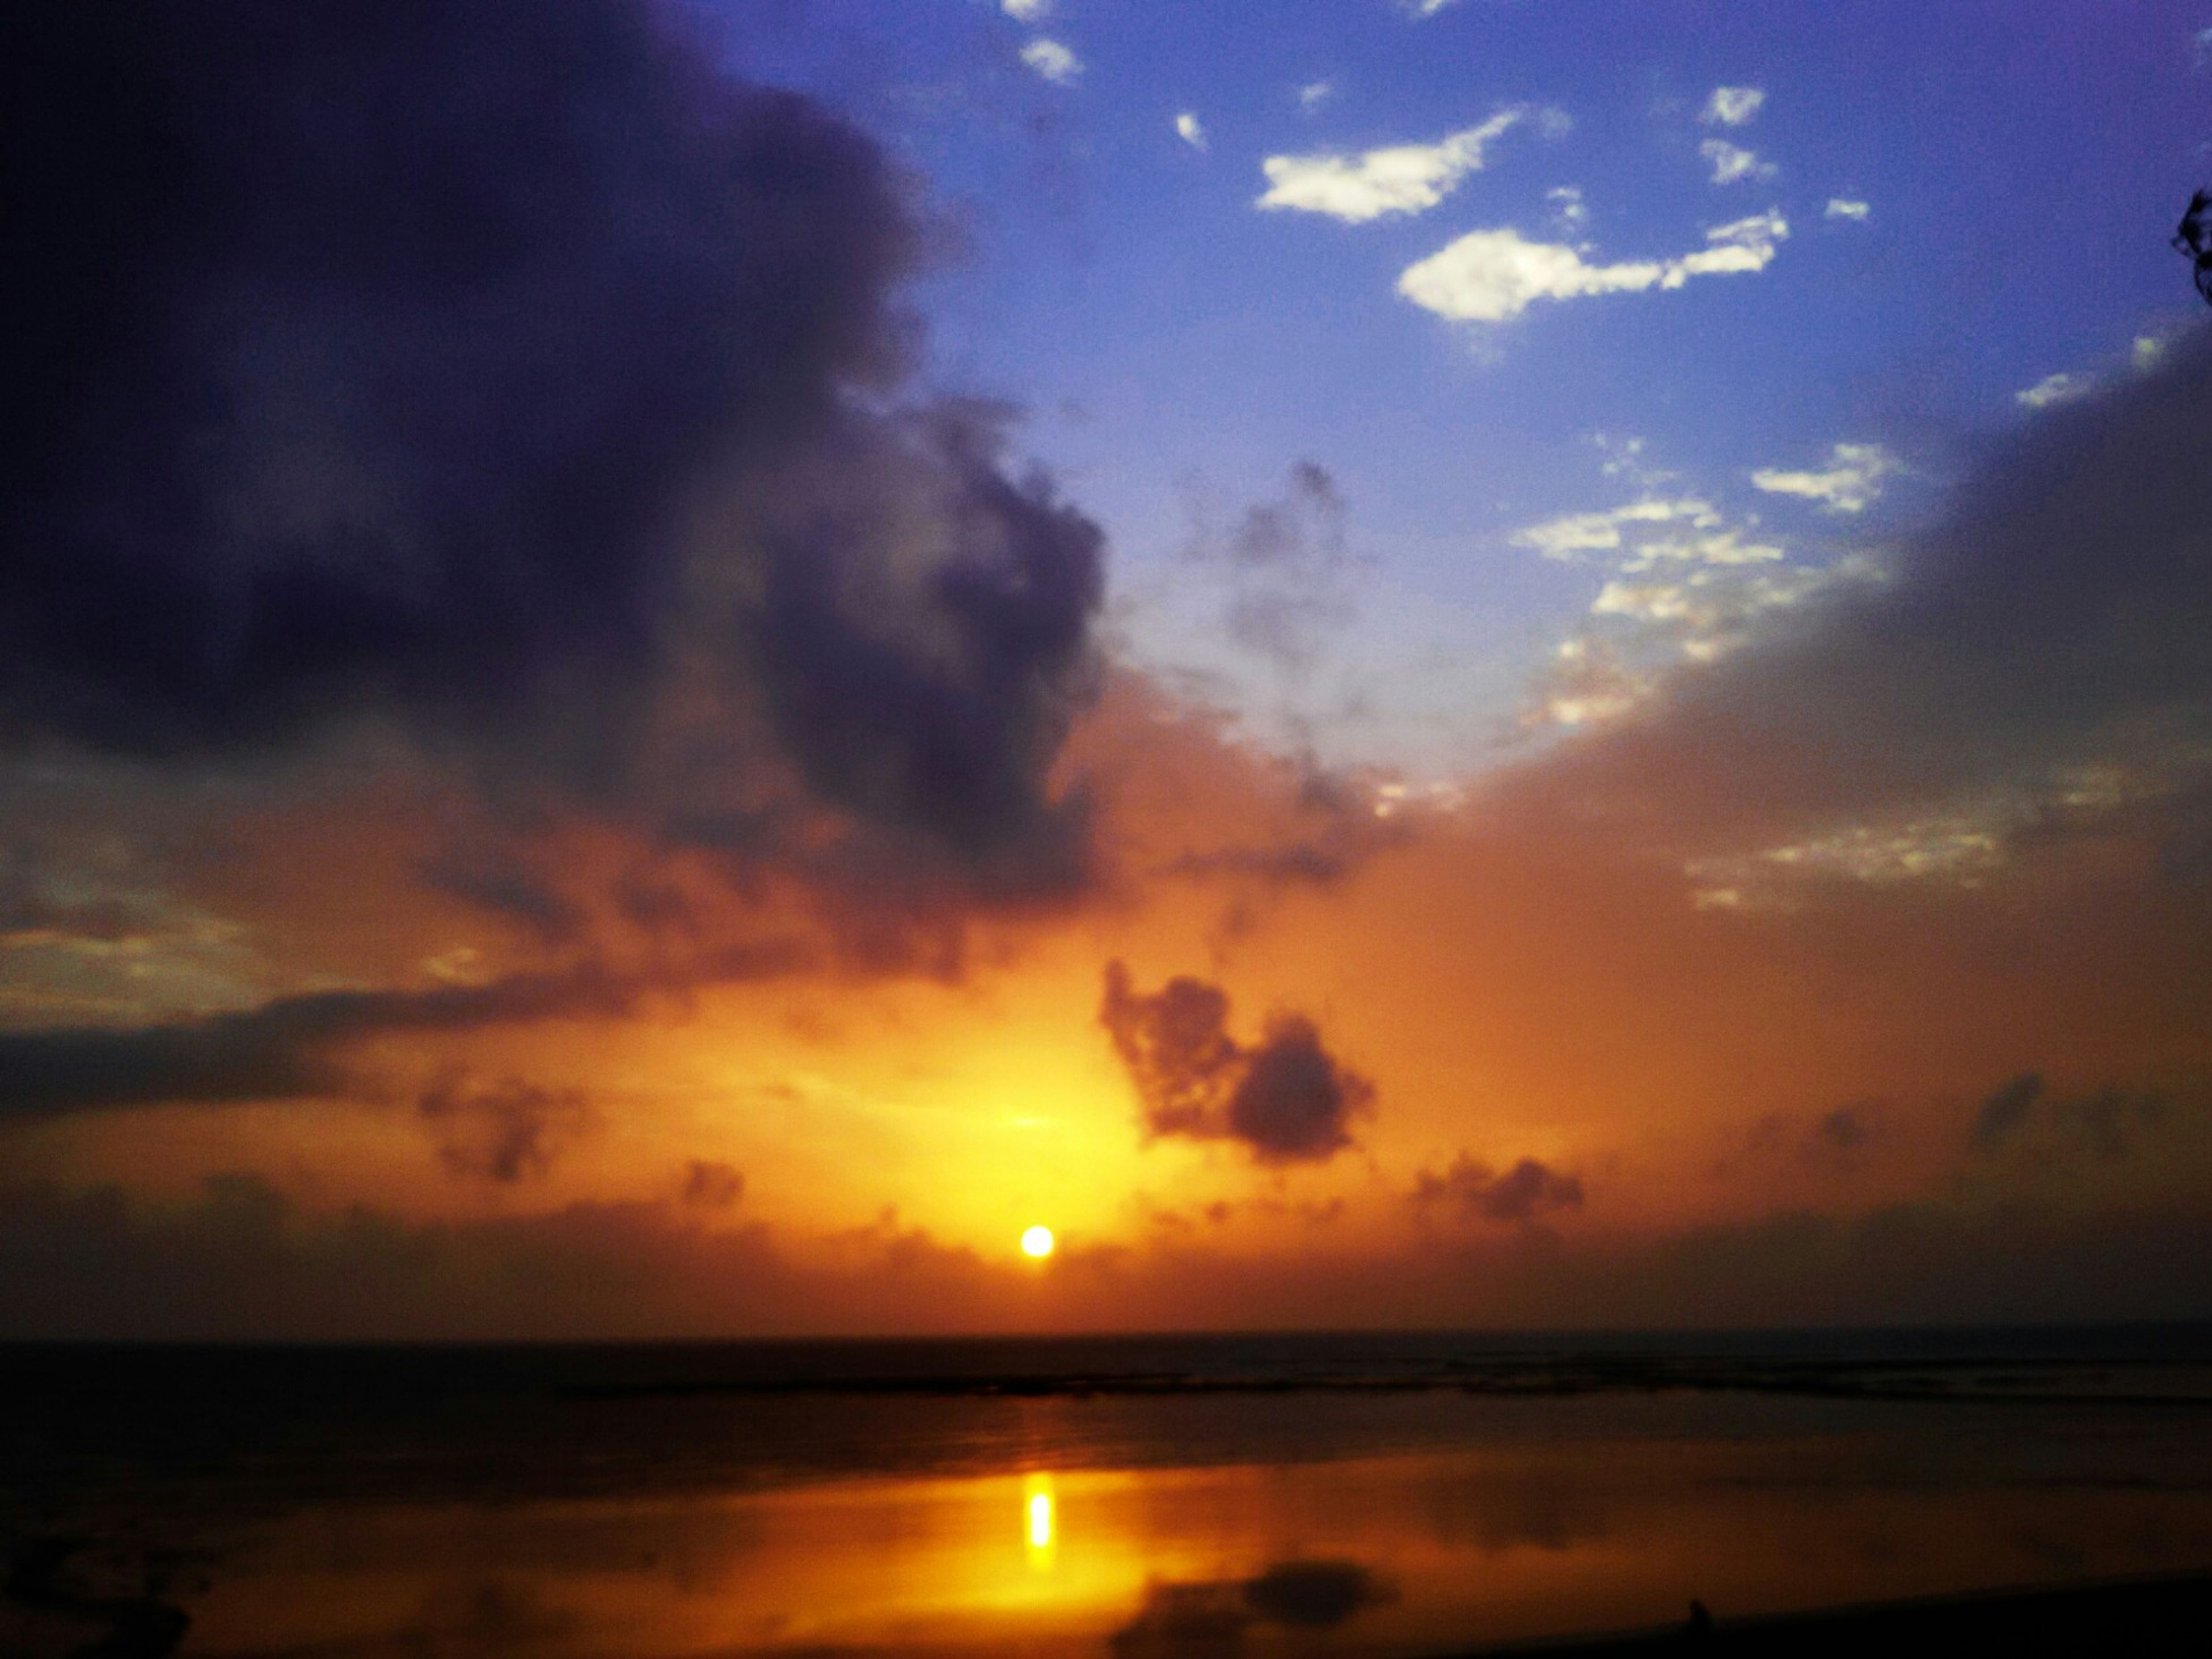 sunset, water, sea, scenics, orange color, sky, horizon over water, tranquil scene, sun, beauty in nature, tranquility, reflection, idyllic, beach, cloud - sky, nature, cloud, shore, silhouette, dramatic sky